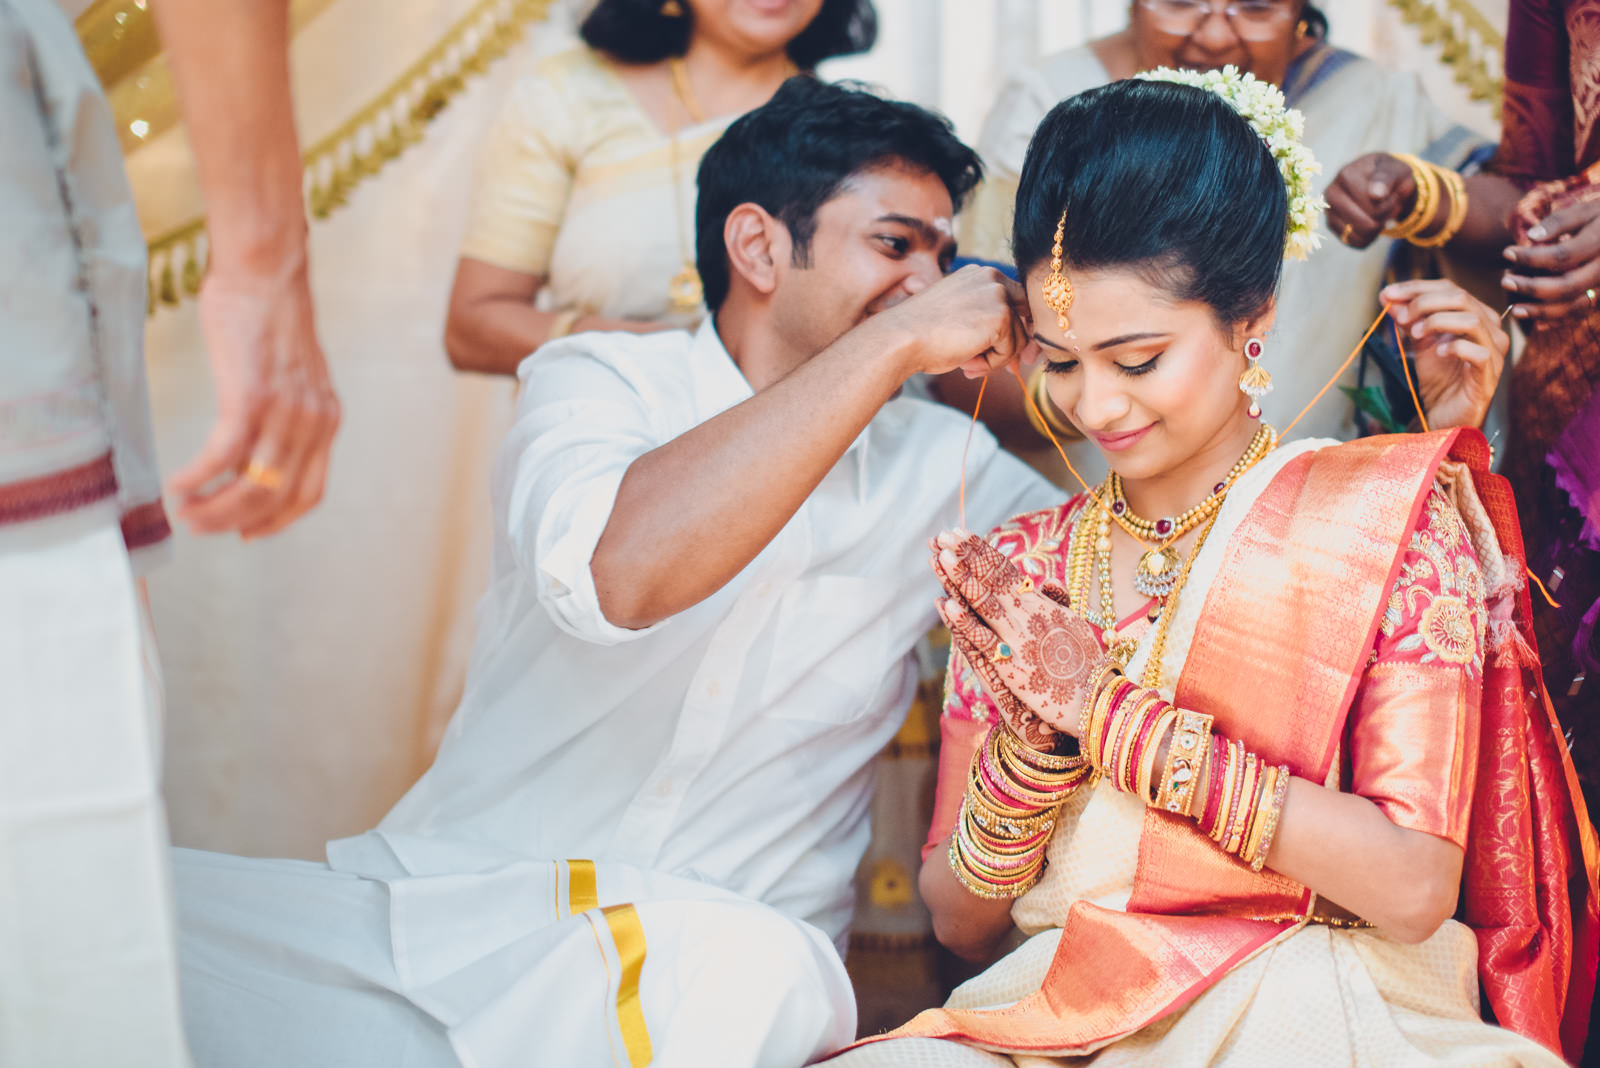 Indian traditional Wedding in Washington USA. Wedding Photography by Journeys by Ram